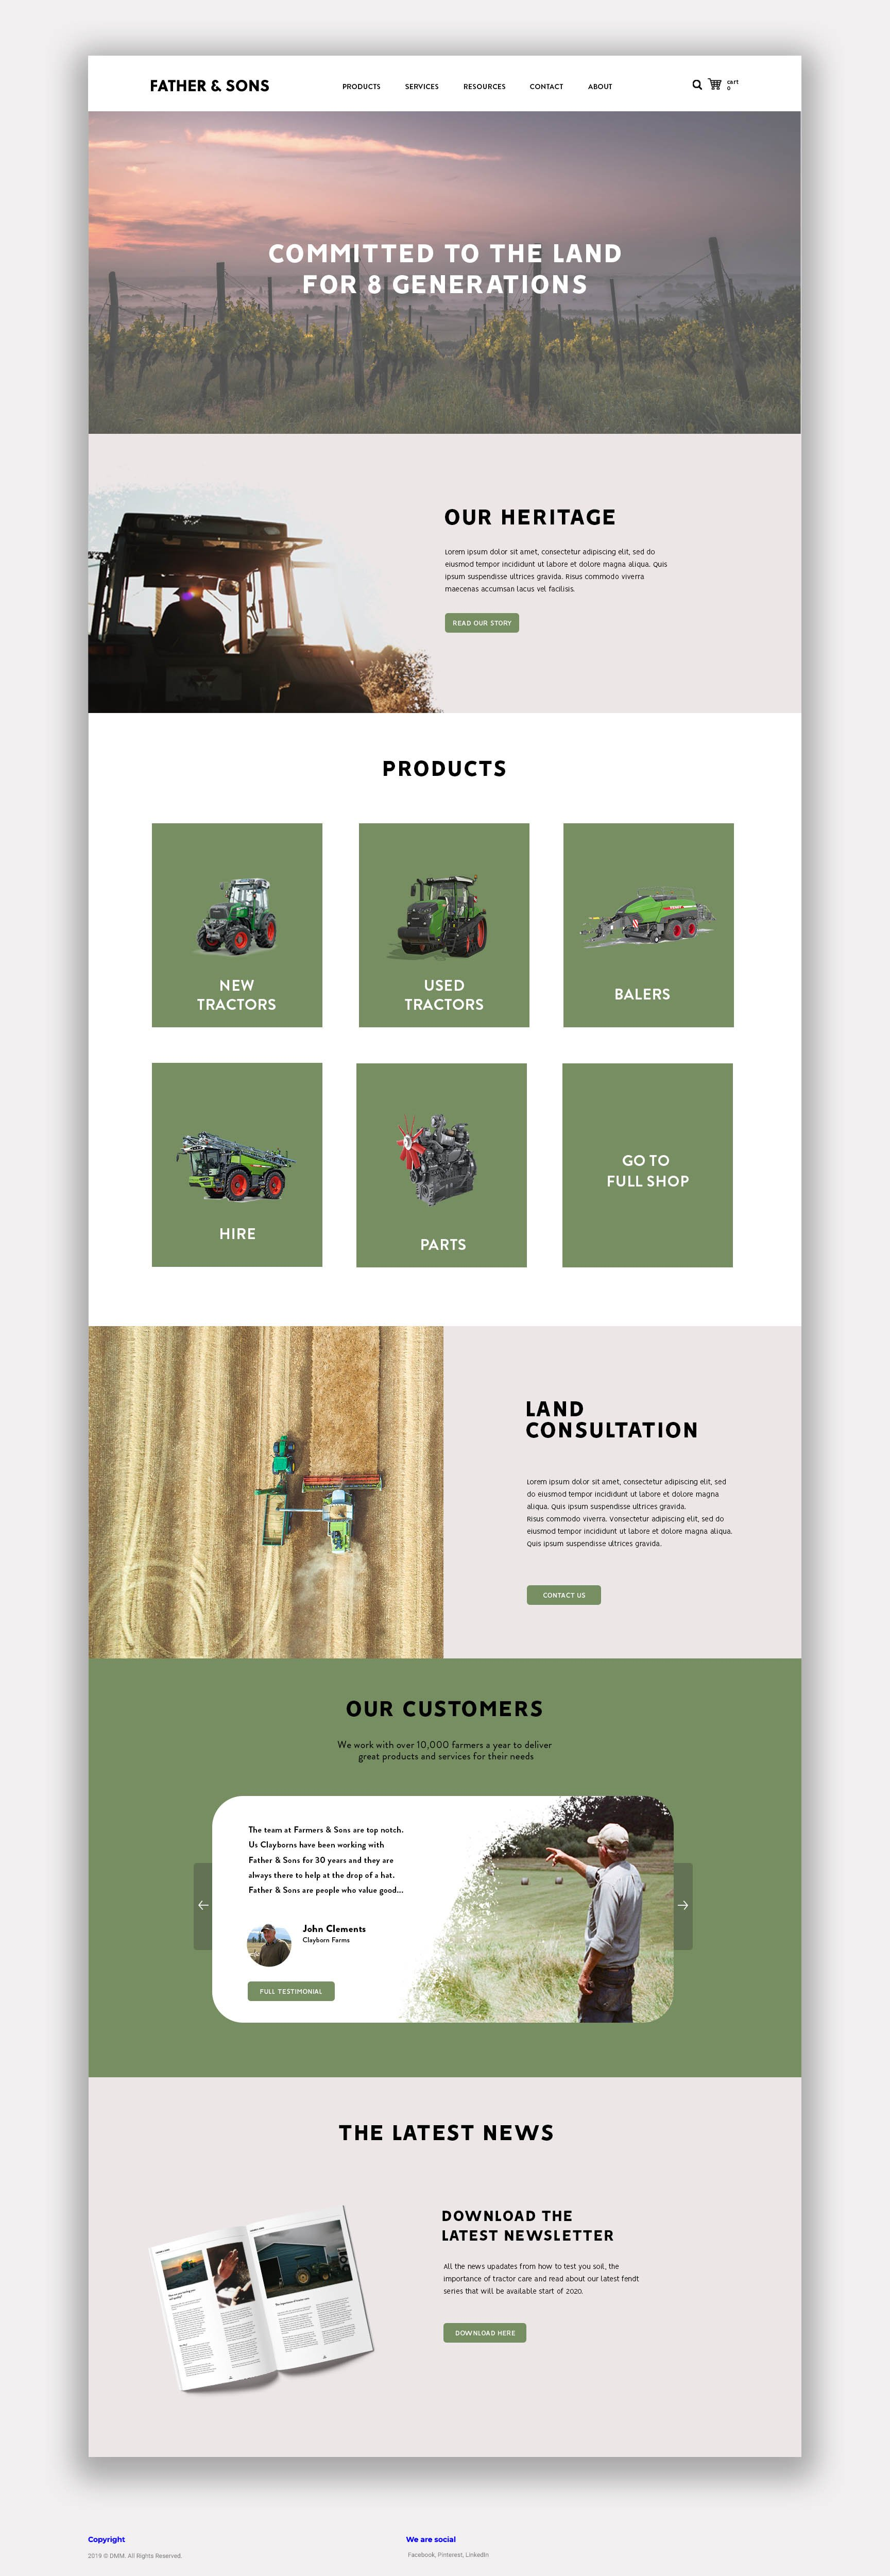 Father Sons full mock-up page